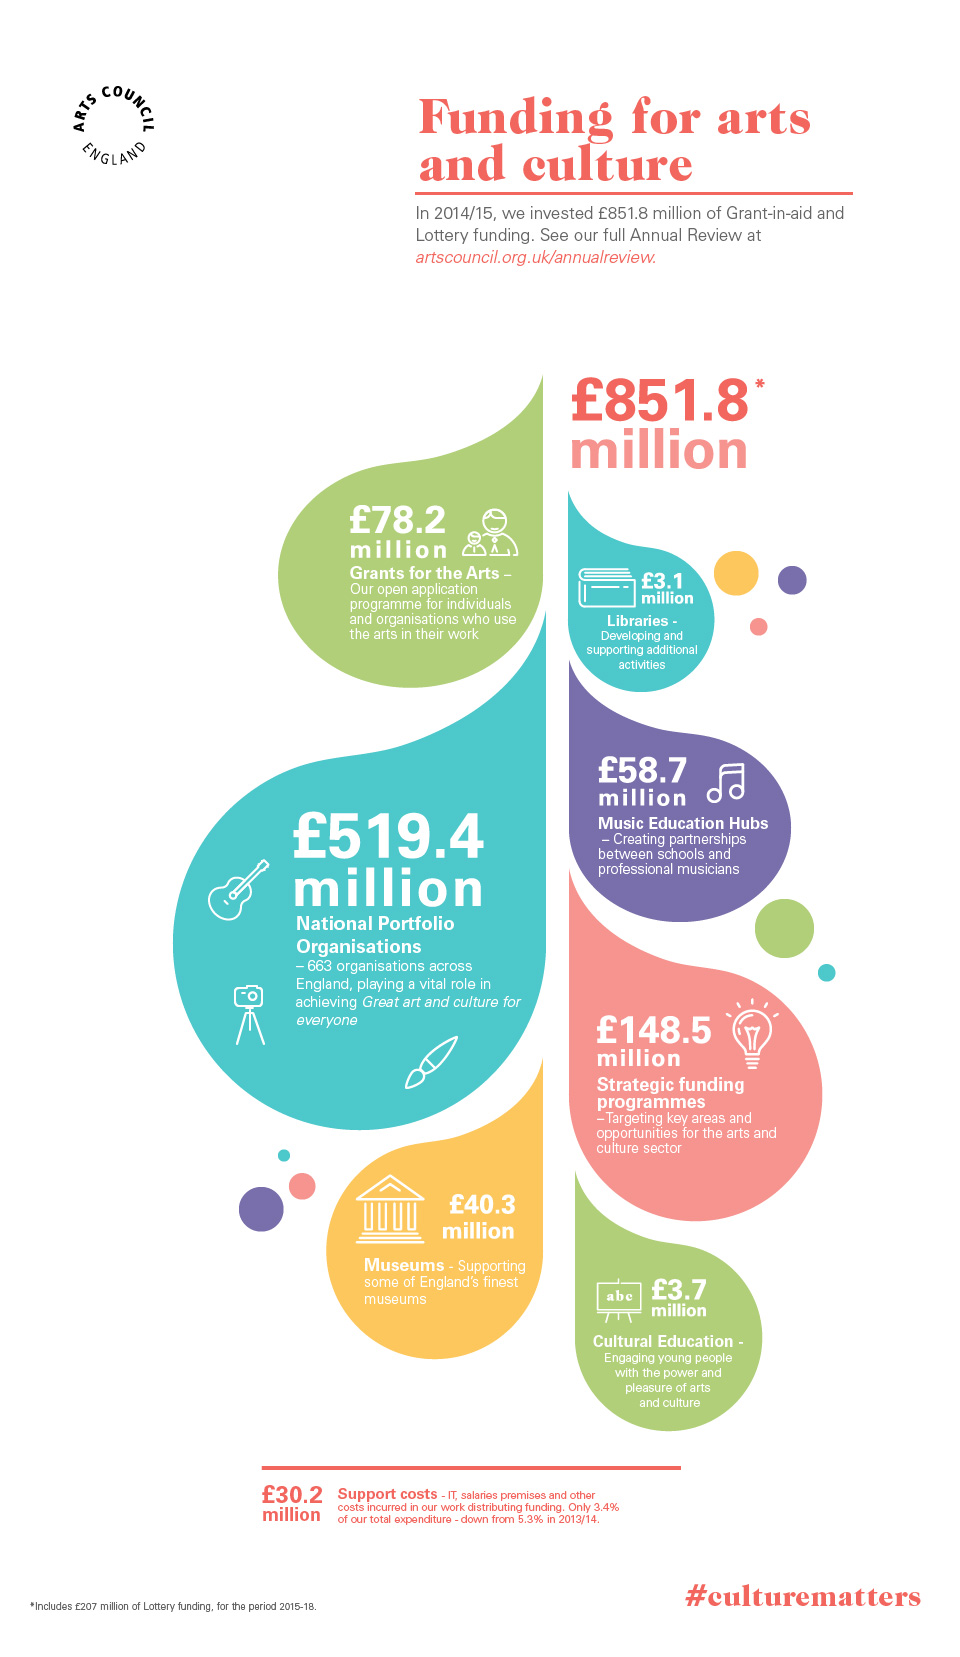 Annual Report 201415 Infographic Funding